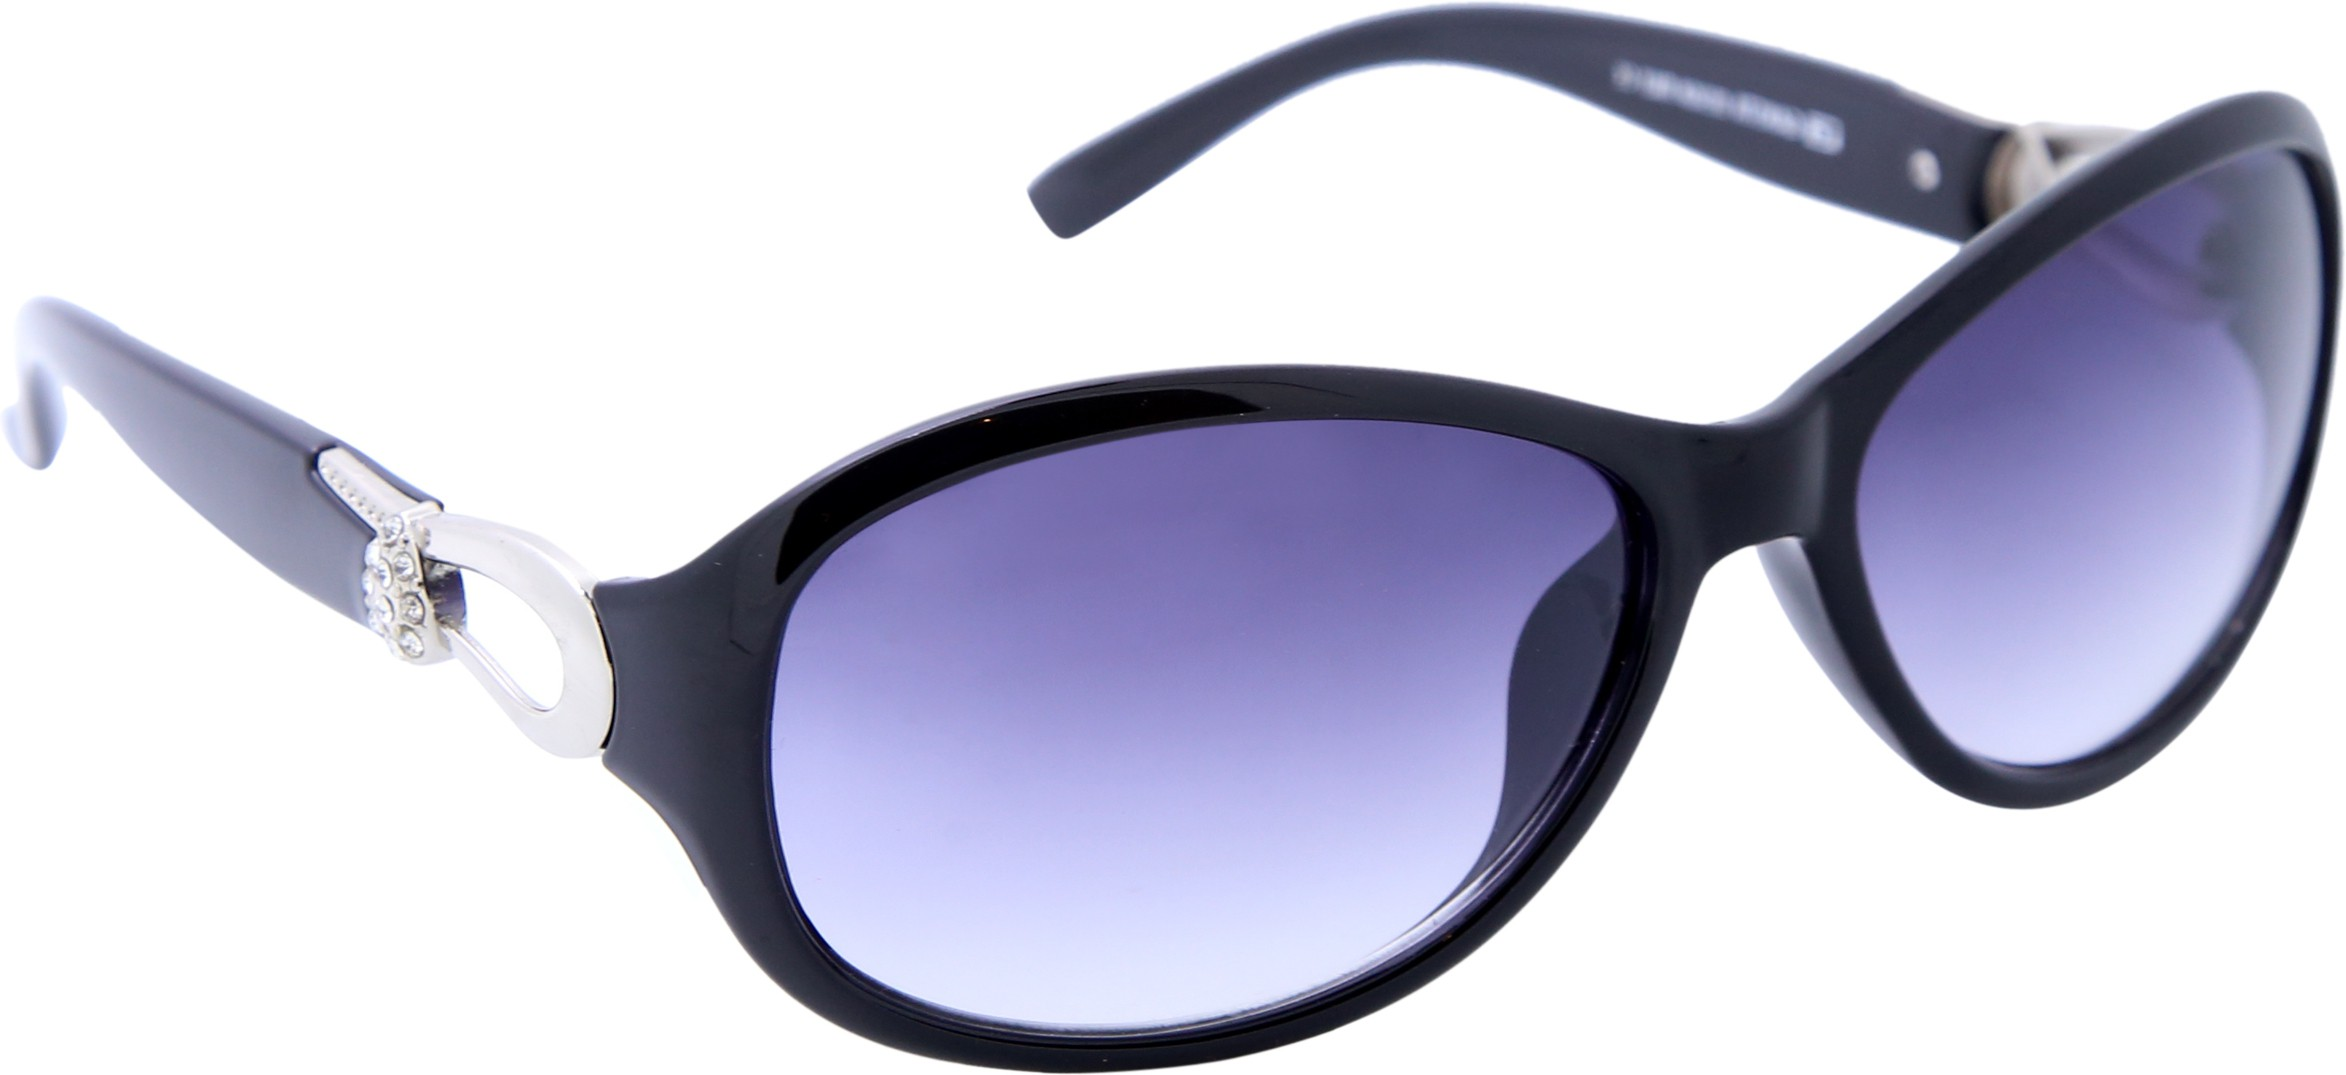 Deals - Delhi - Gansta & more <br> Womens Sunglasses<br> Category - sunglasses<br> Business - Flipkart.com